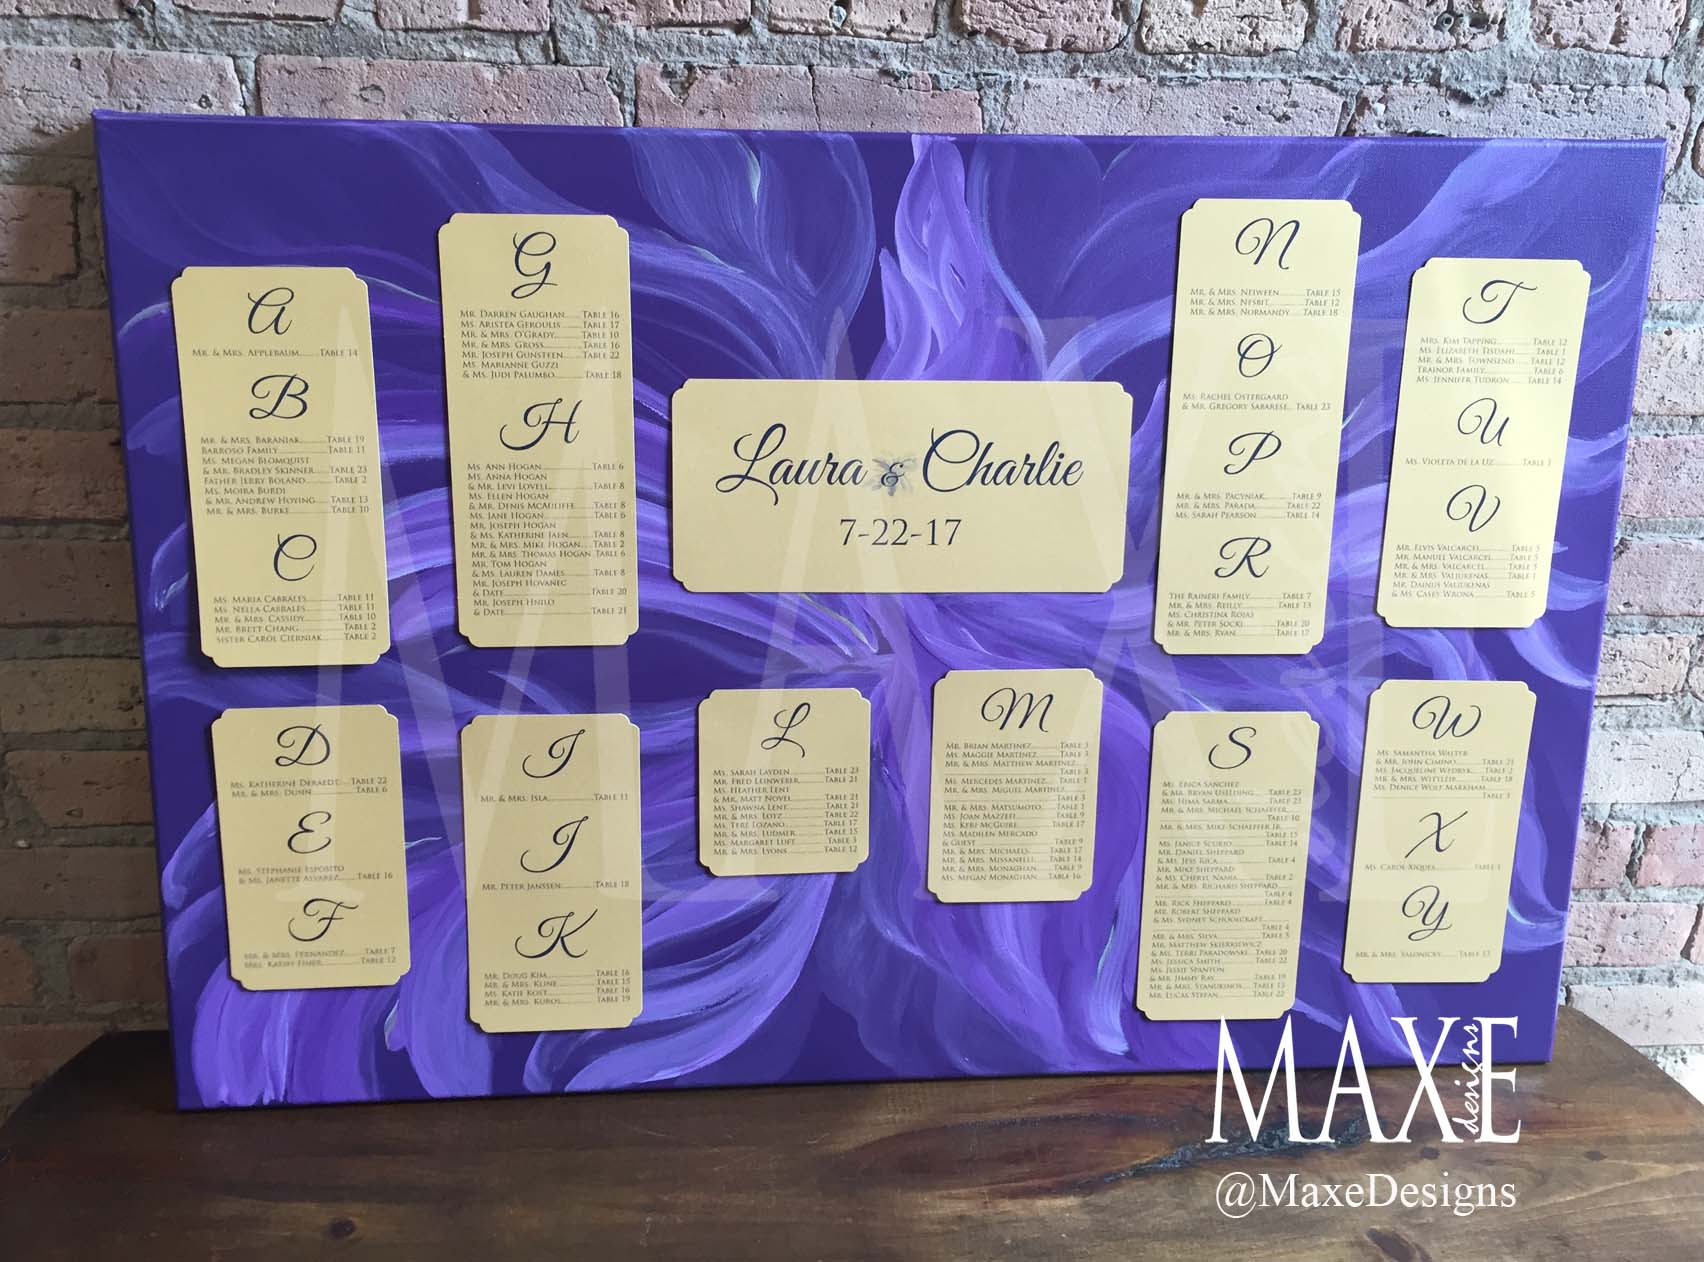 Laura & Charlie's Custom Canvas Art Seating Chart now hangs in their house after the seating chart itself was removed. Yay!